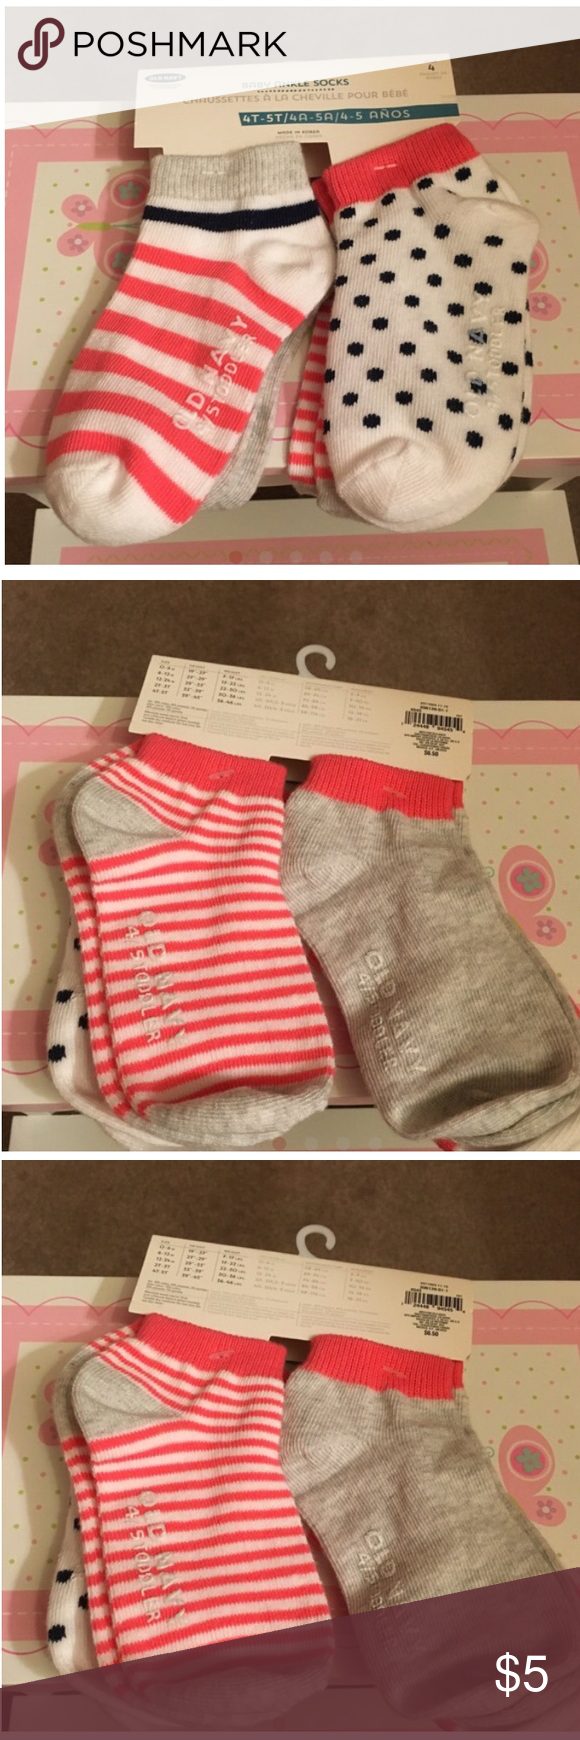 Adorable Ankle Socks! Super cute polkadot and striped socks from Old Navy. Colors are coral pink and navy blue. Old Navy Accessories Hosiery & Socks